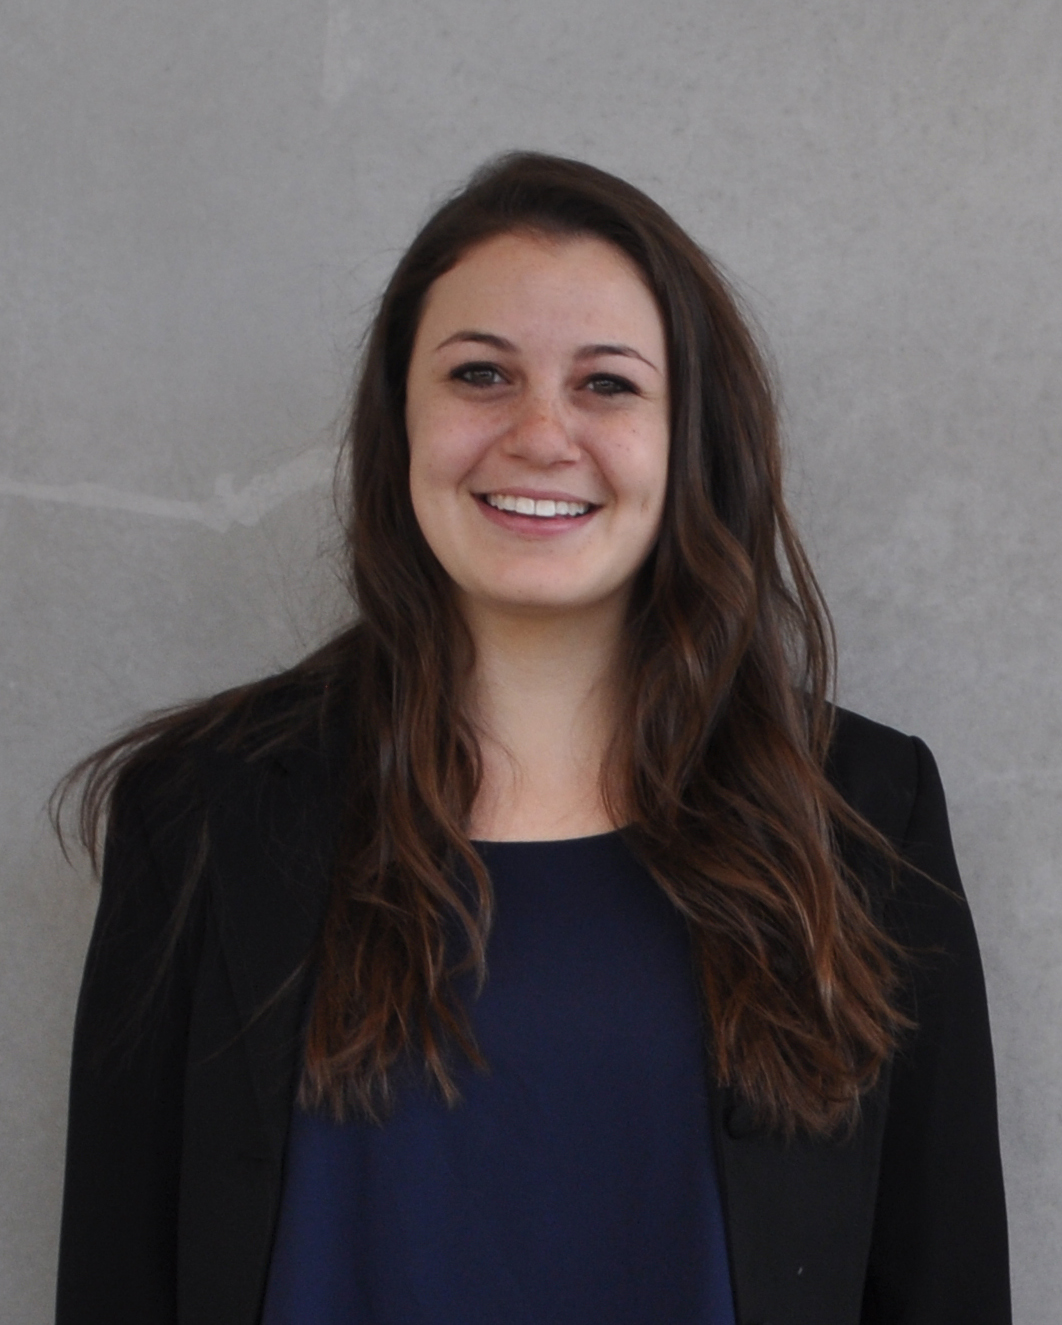 about us the wells lab at cornell university rebecca merenbach is a junior majoring in design and environmental analysis and minoring in information science she is interested in environmental